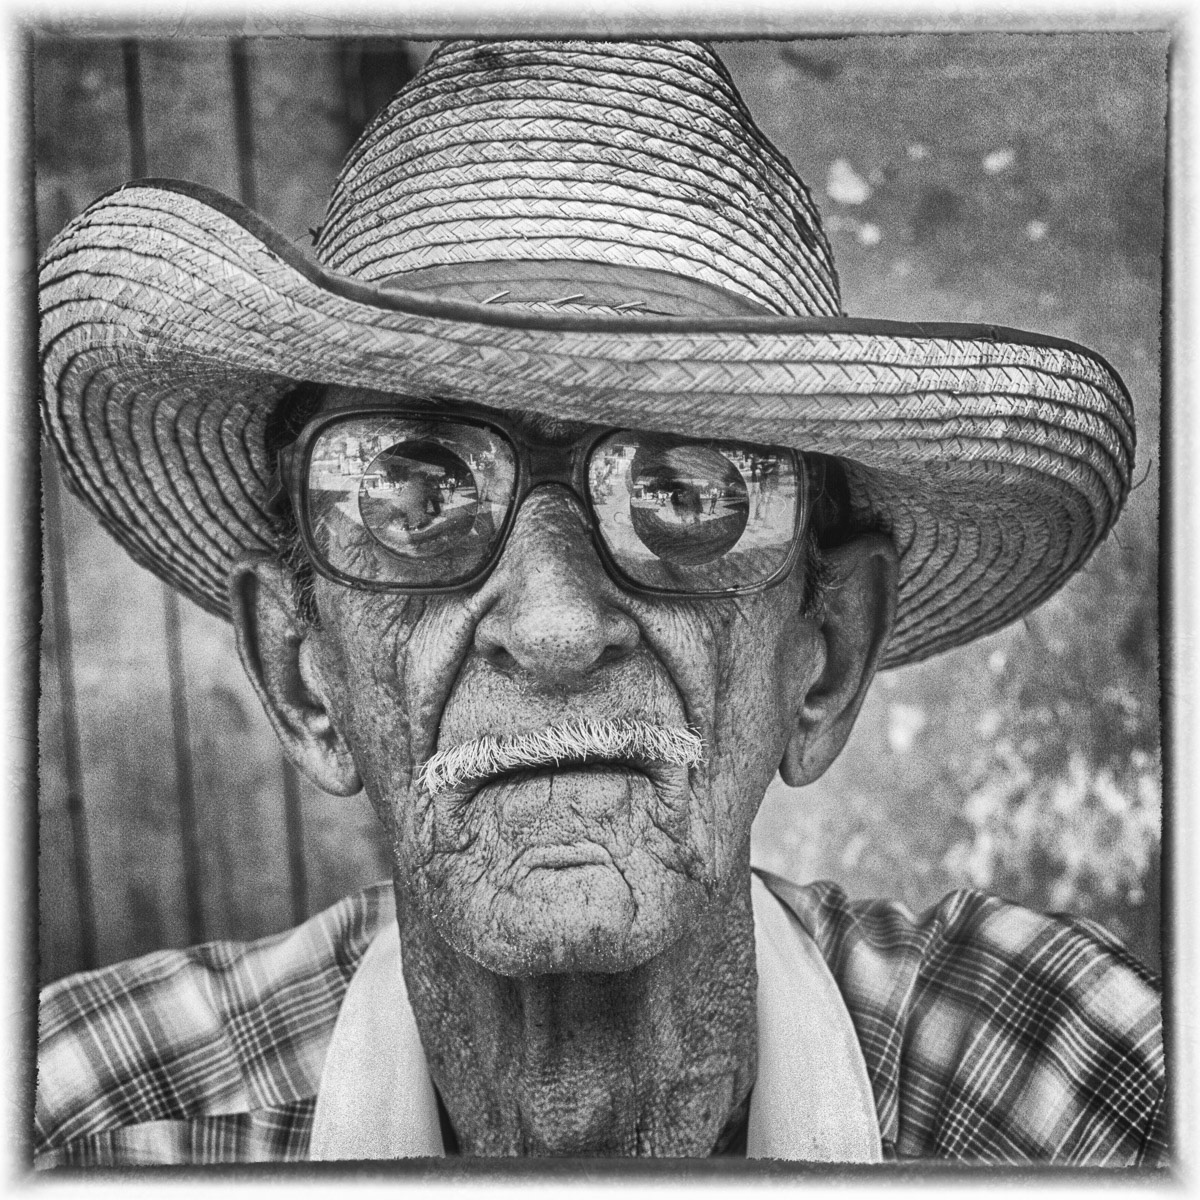 Cuban portrait 04-